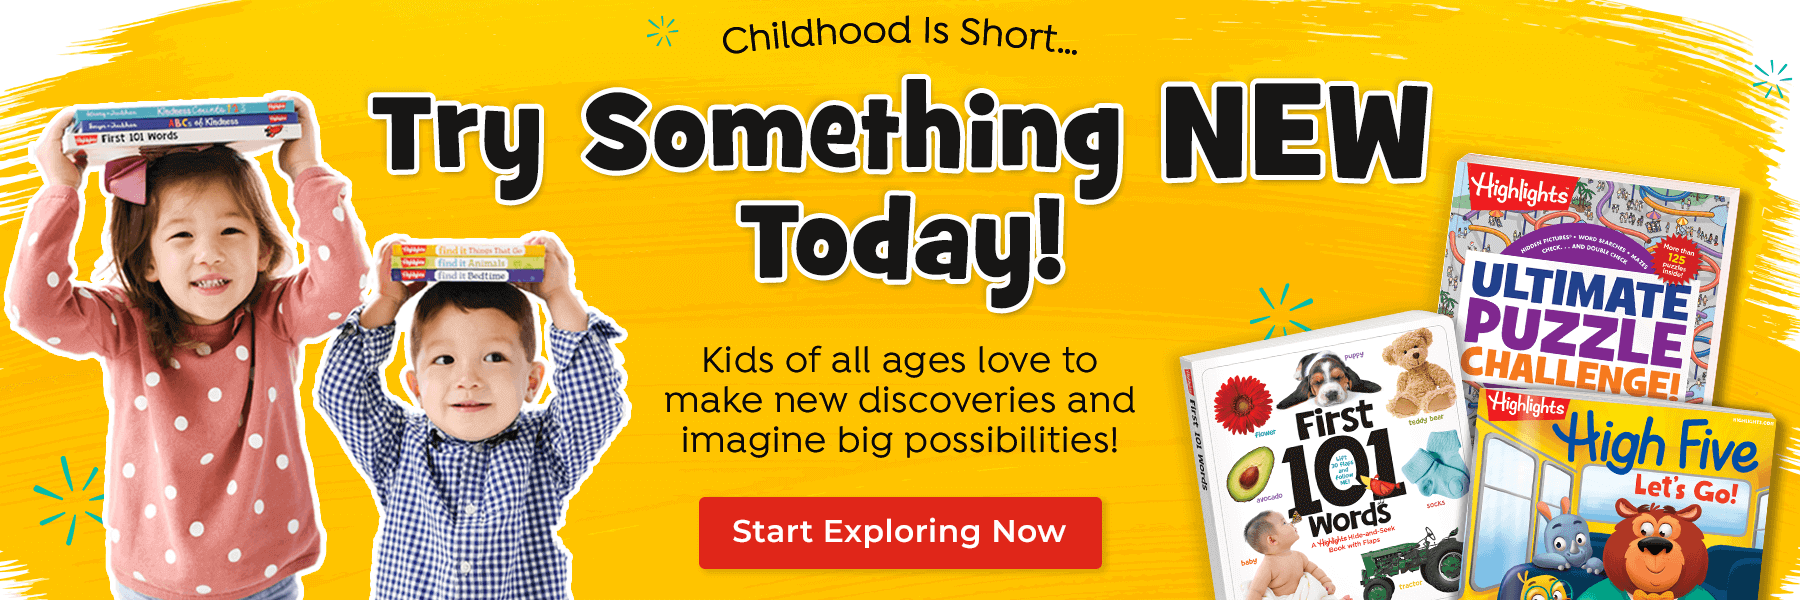 Try something new today and find the perfect fit when you shop by age – Fun with a Purpose for every stage of childhood!